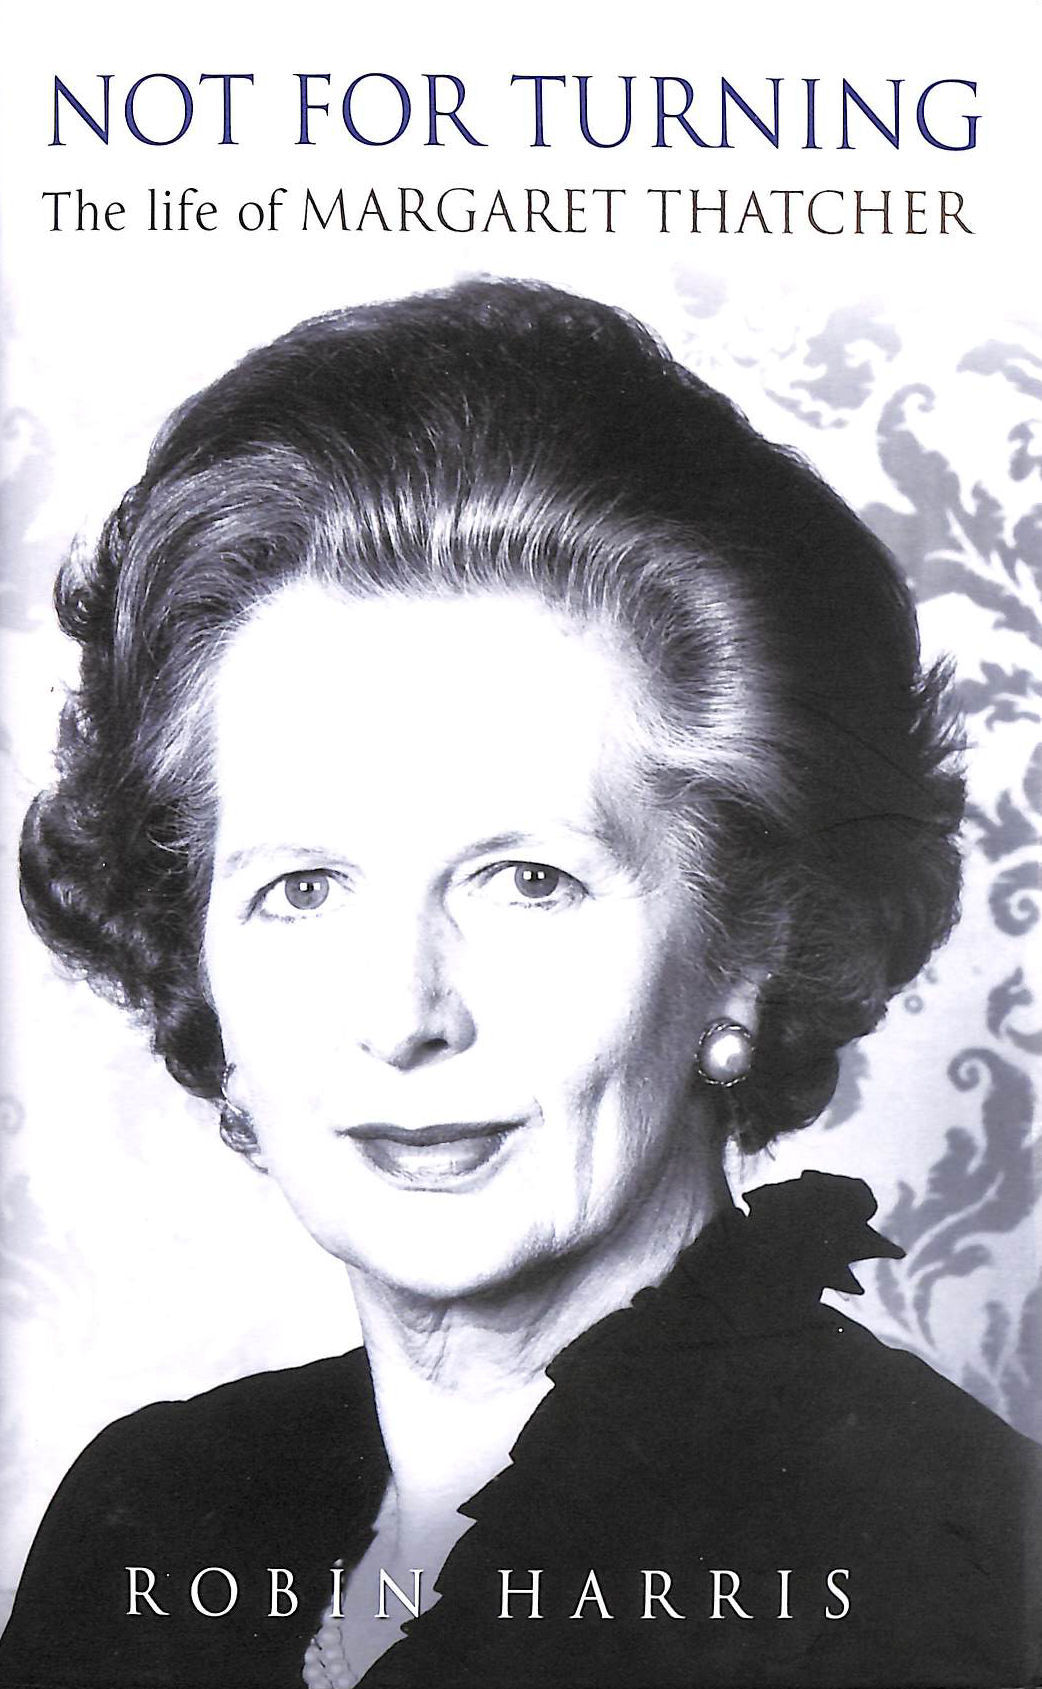 Image for Not for Turning: The Life of Margaret Thatcher